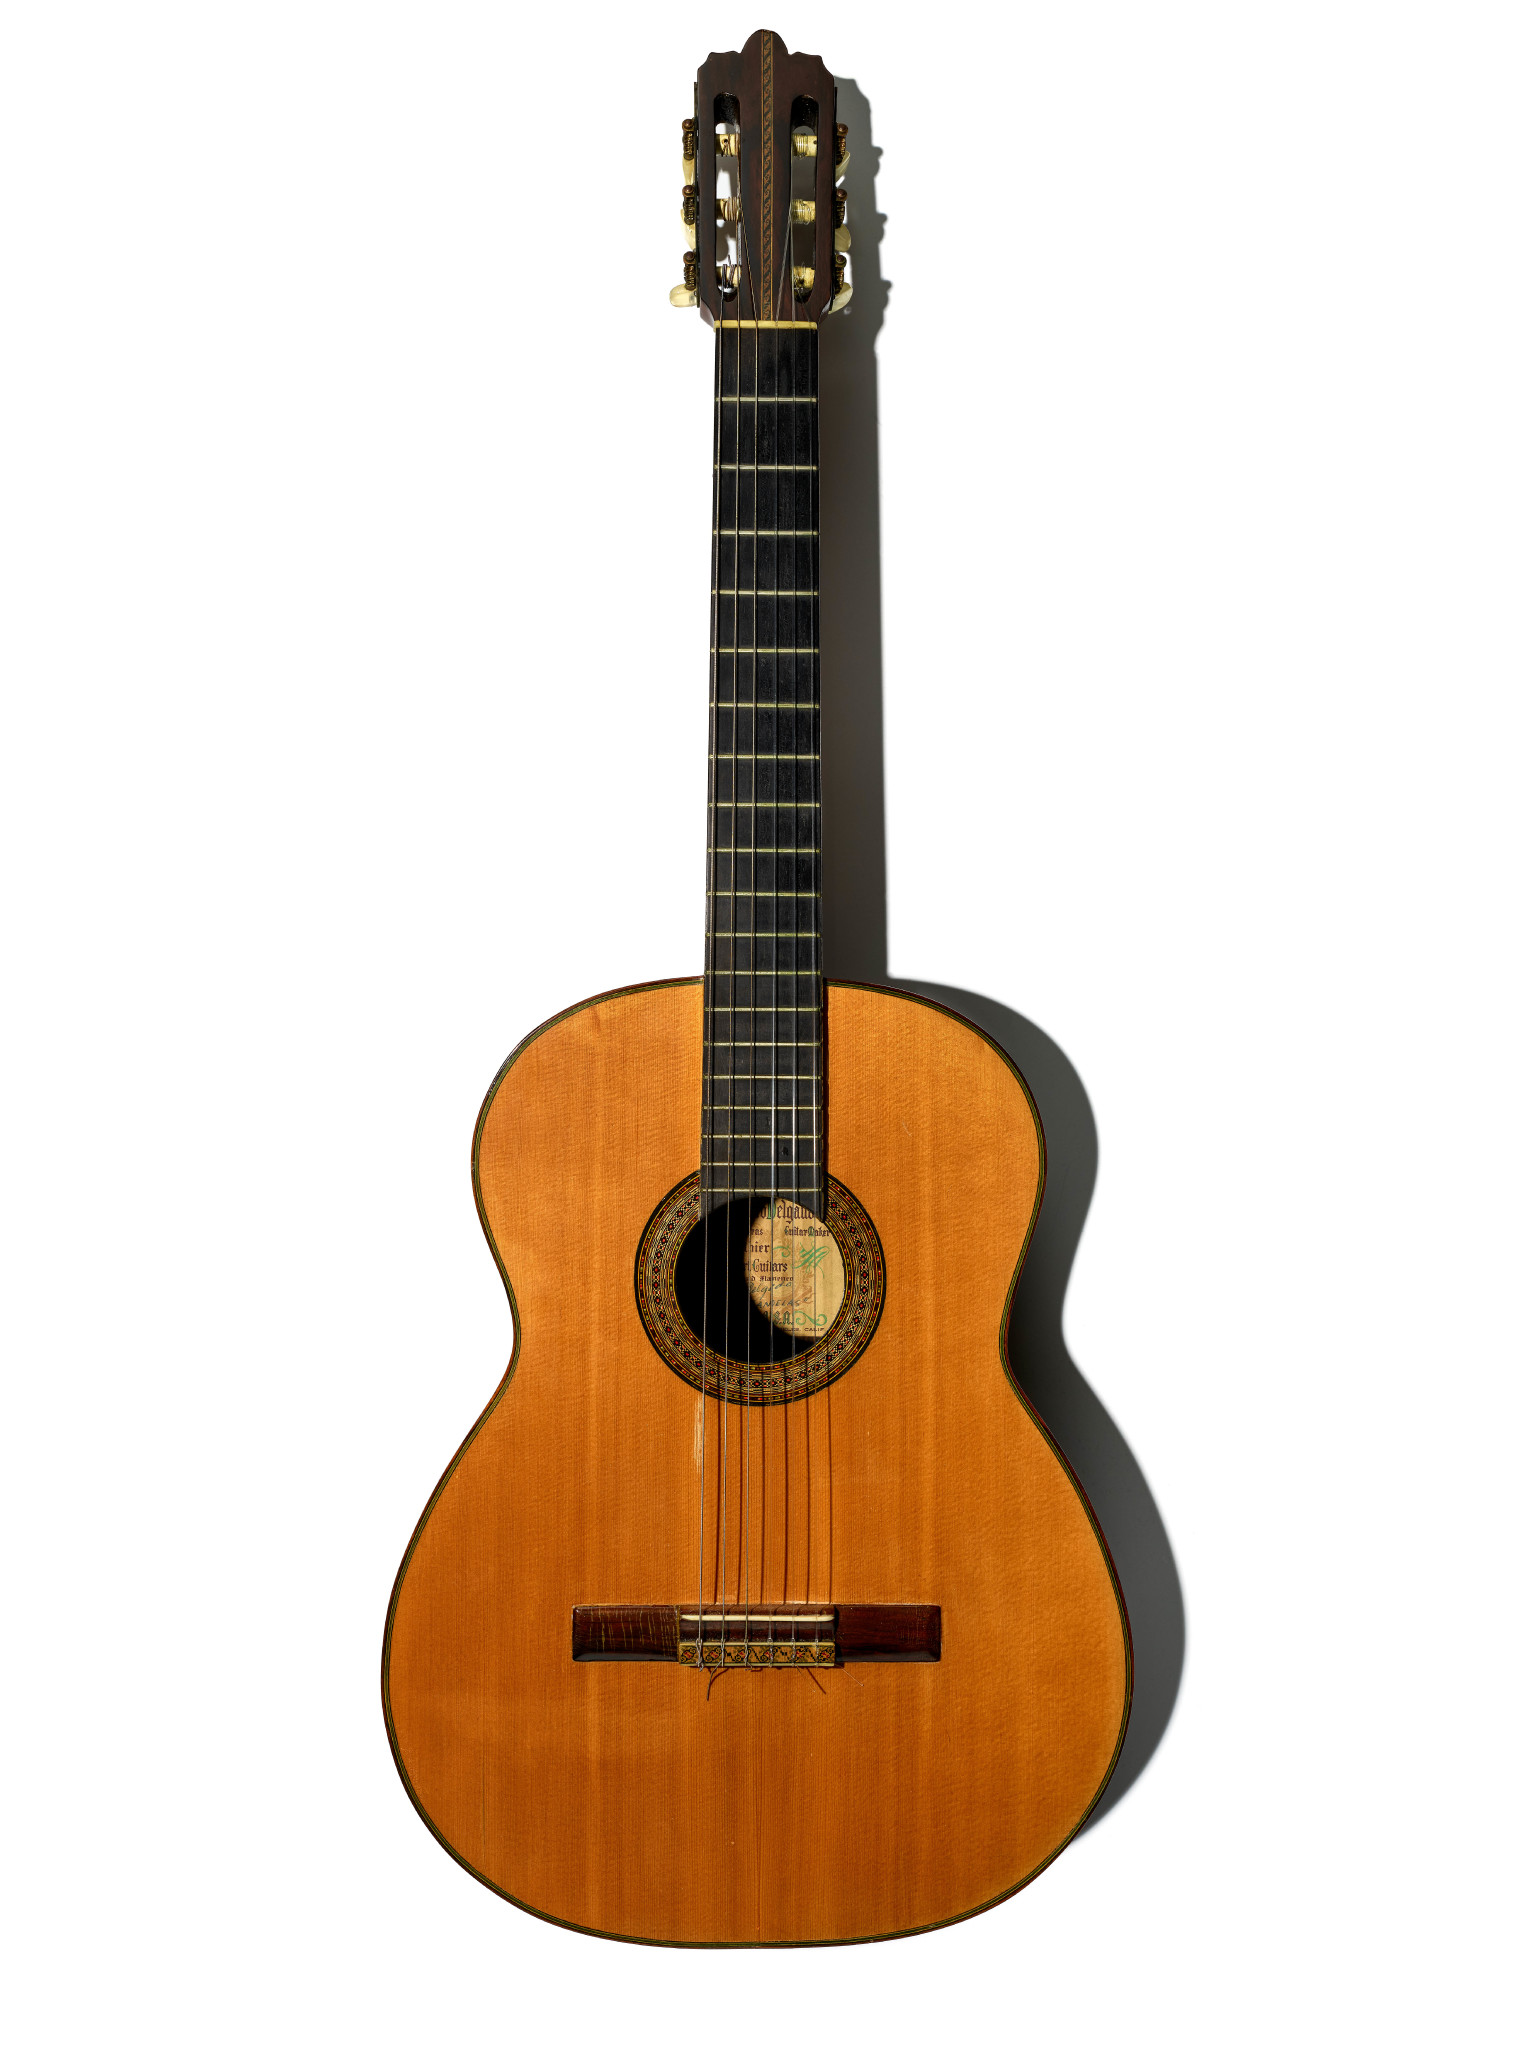 A guitar posed vertically